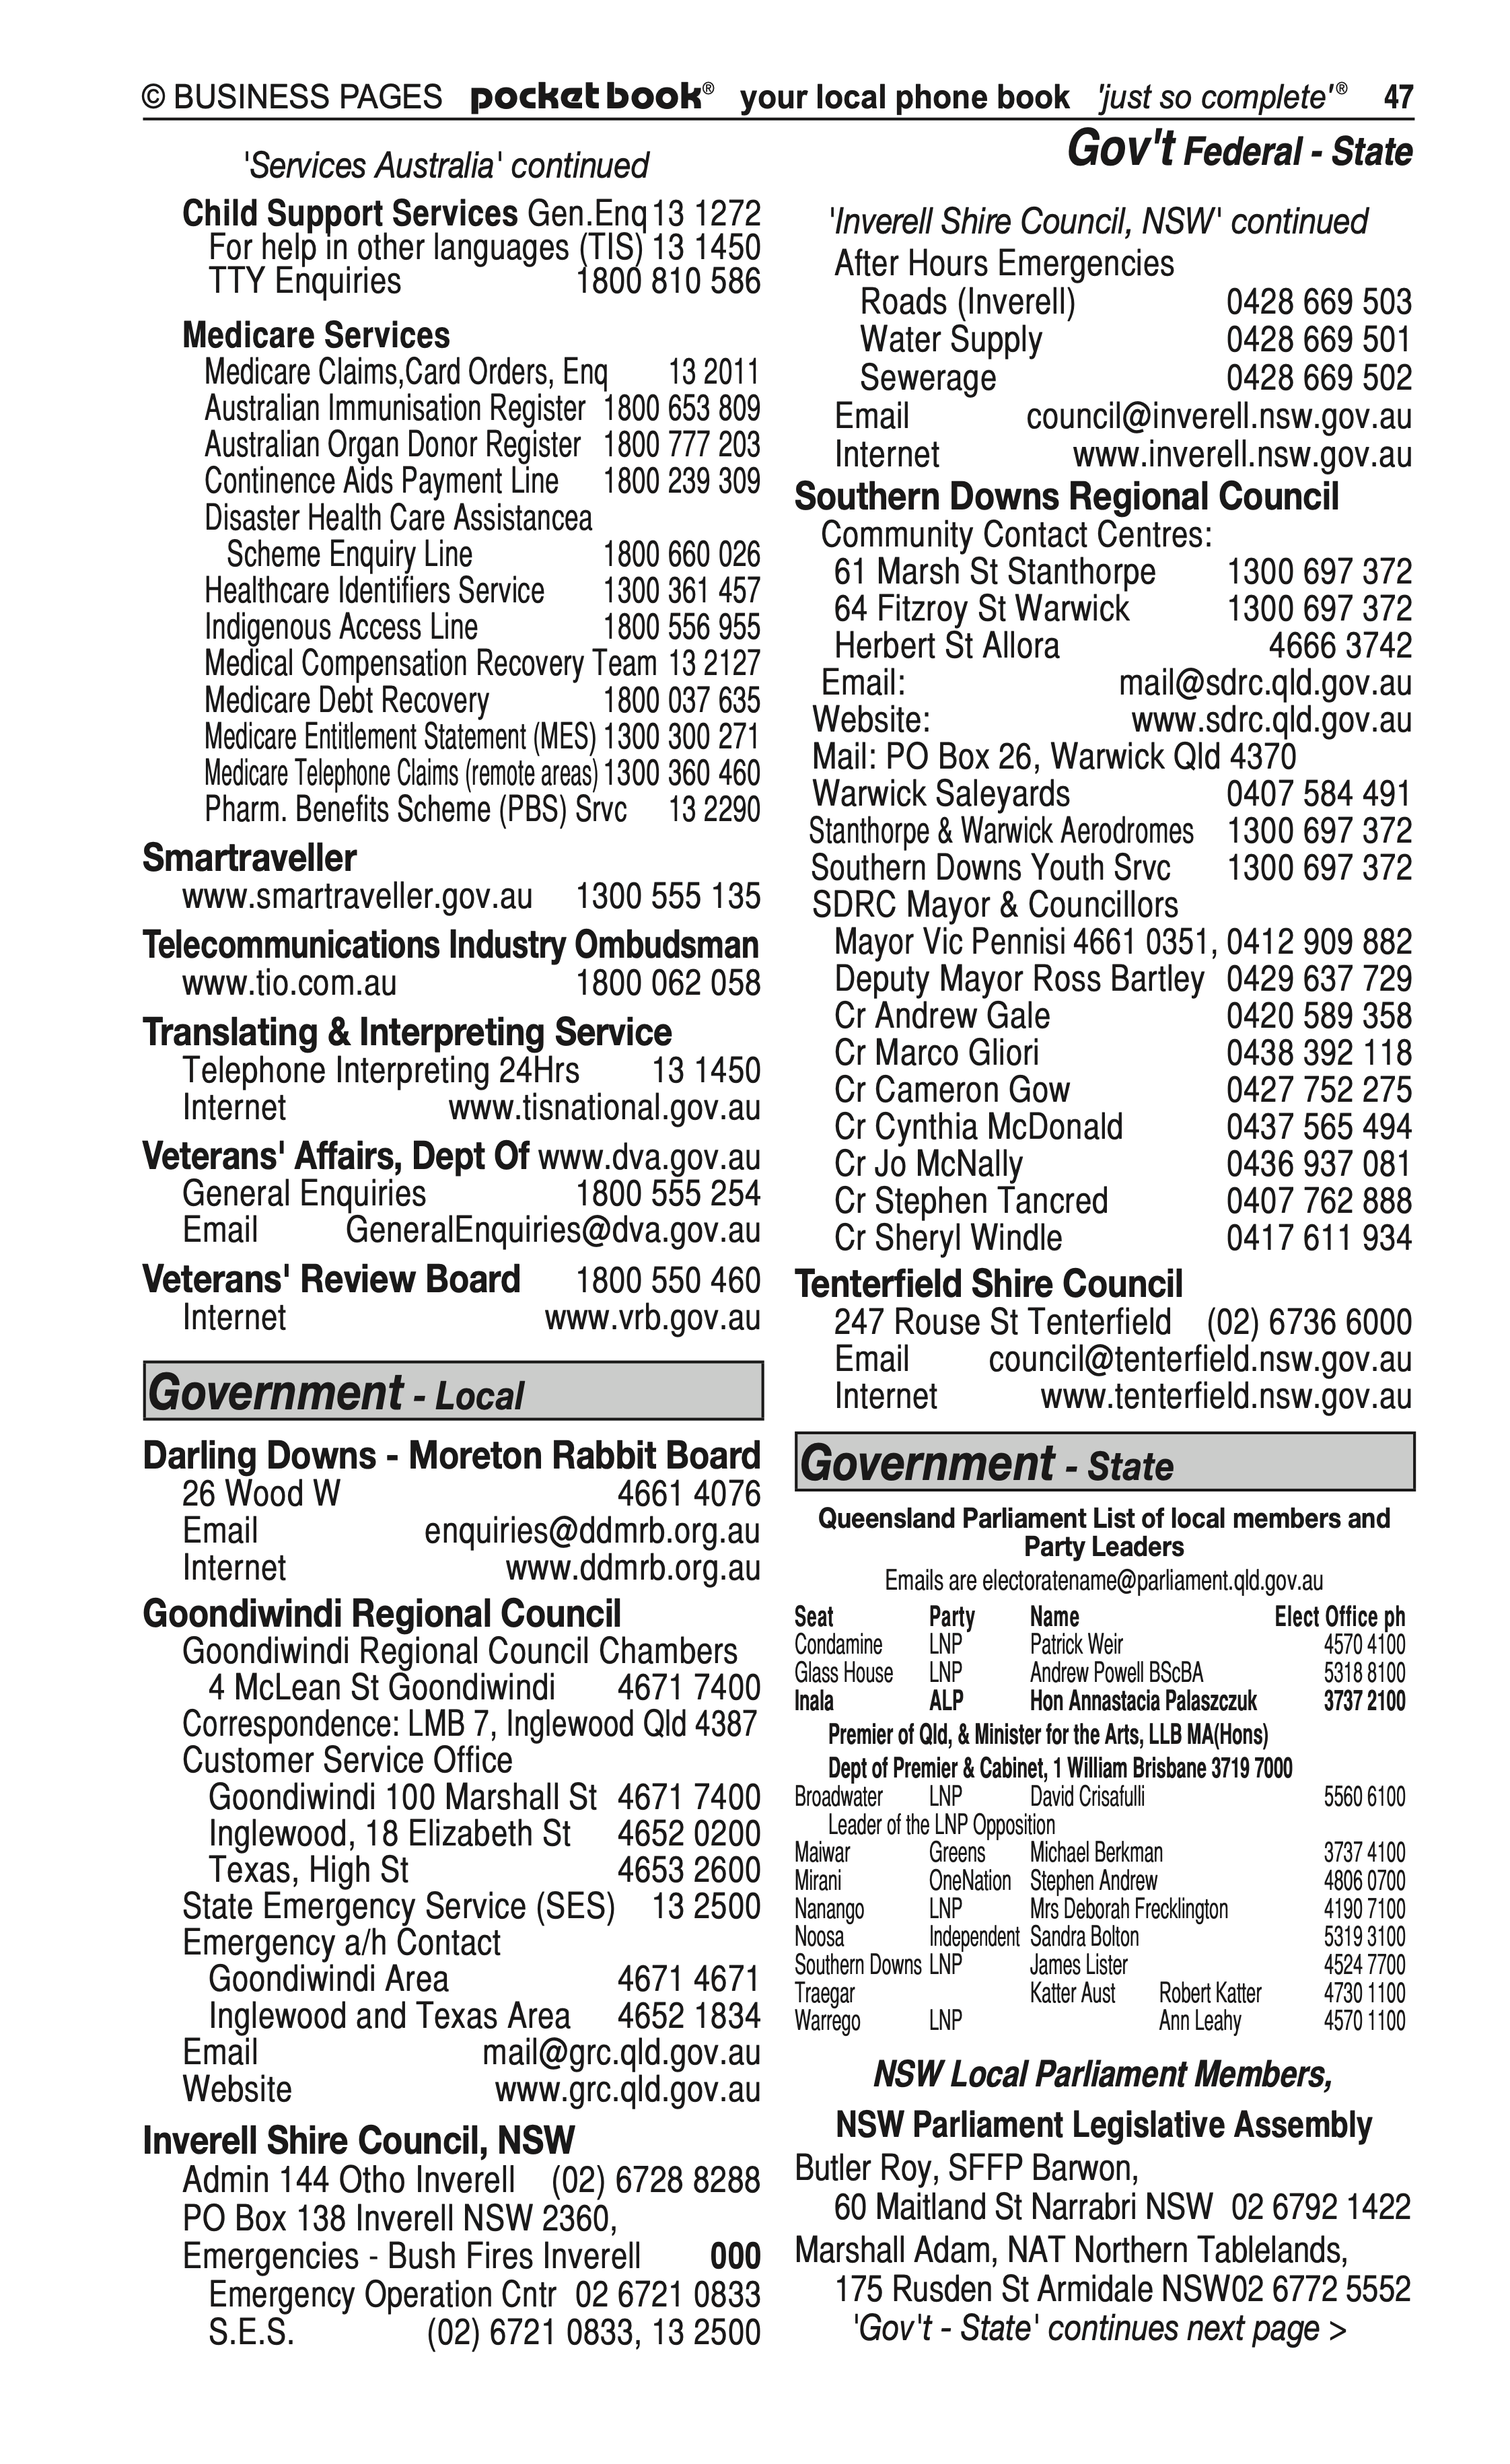 Speed Detailing Pty Ltd | Agricultural – Machinery & Services in Warwick | PBezy Pocket Books local directories - page 47